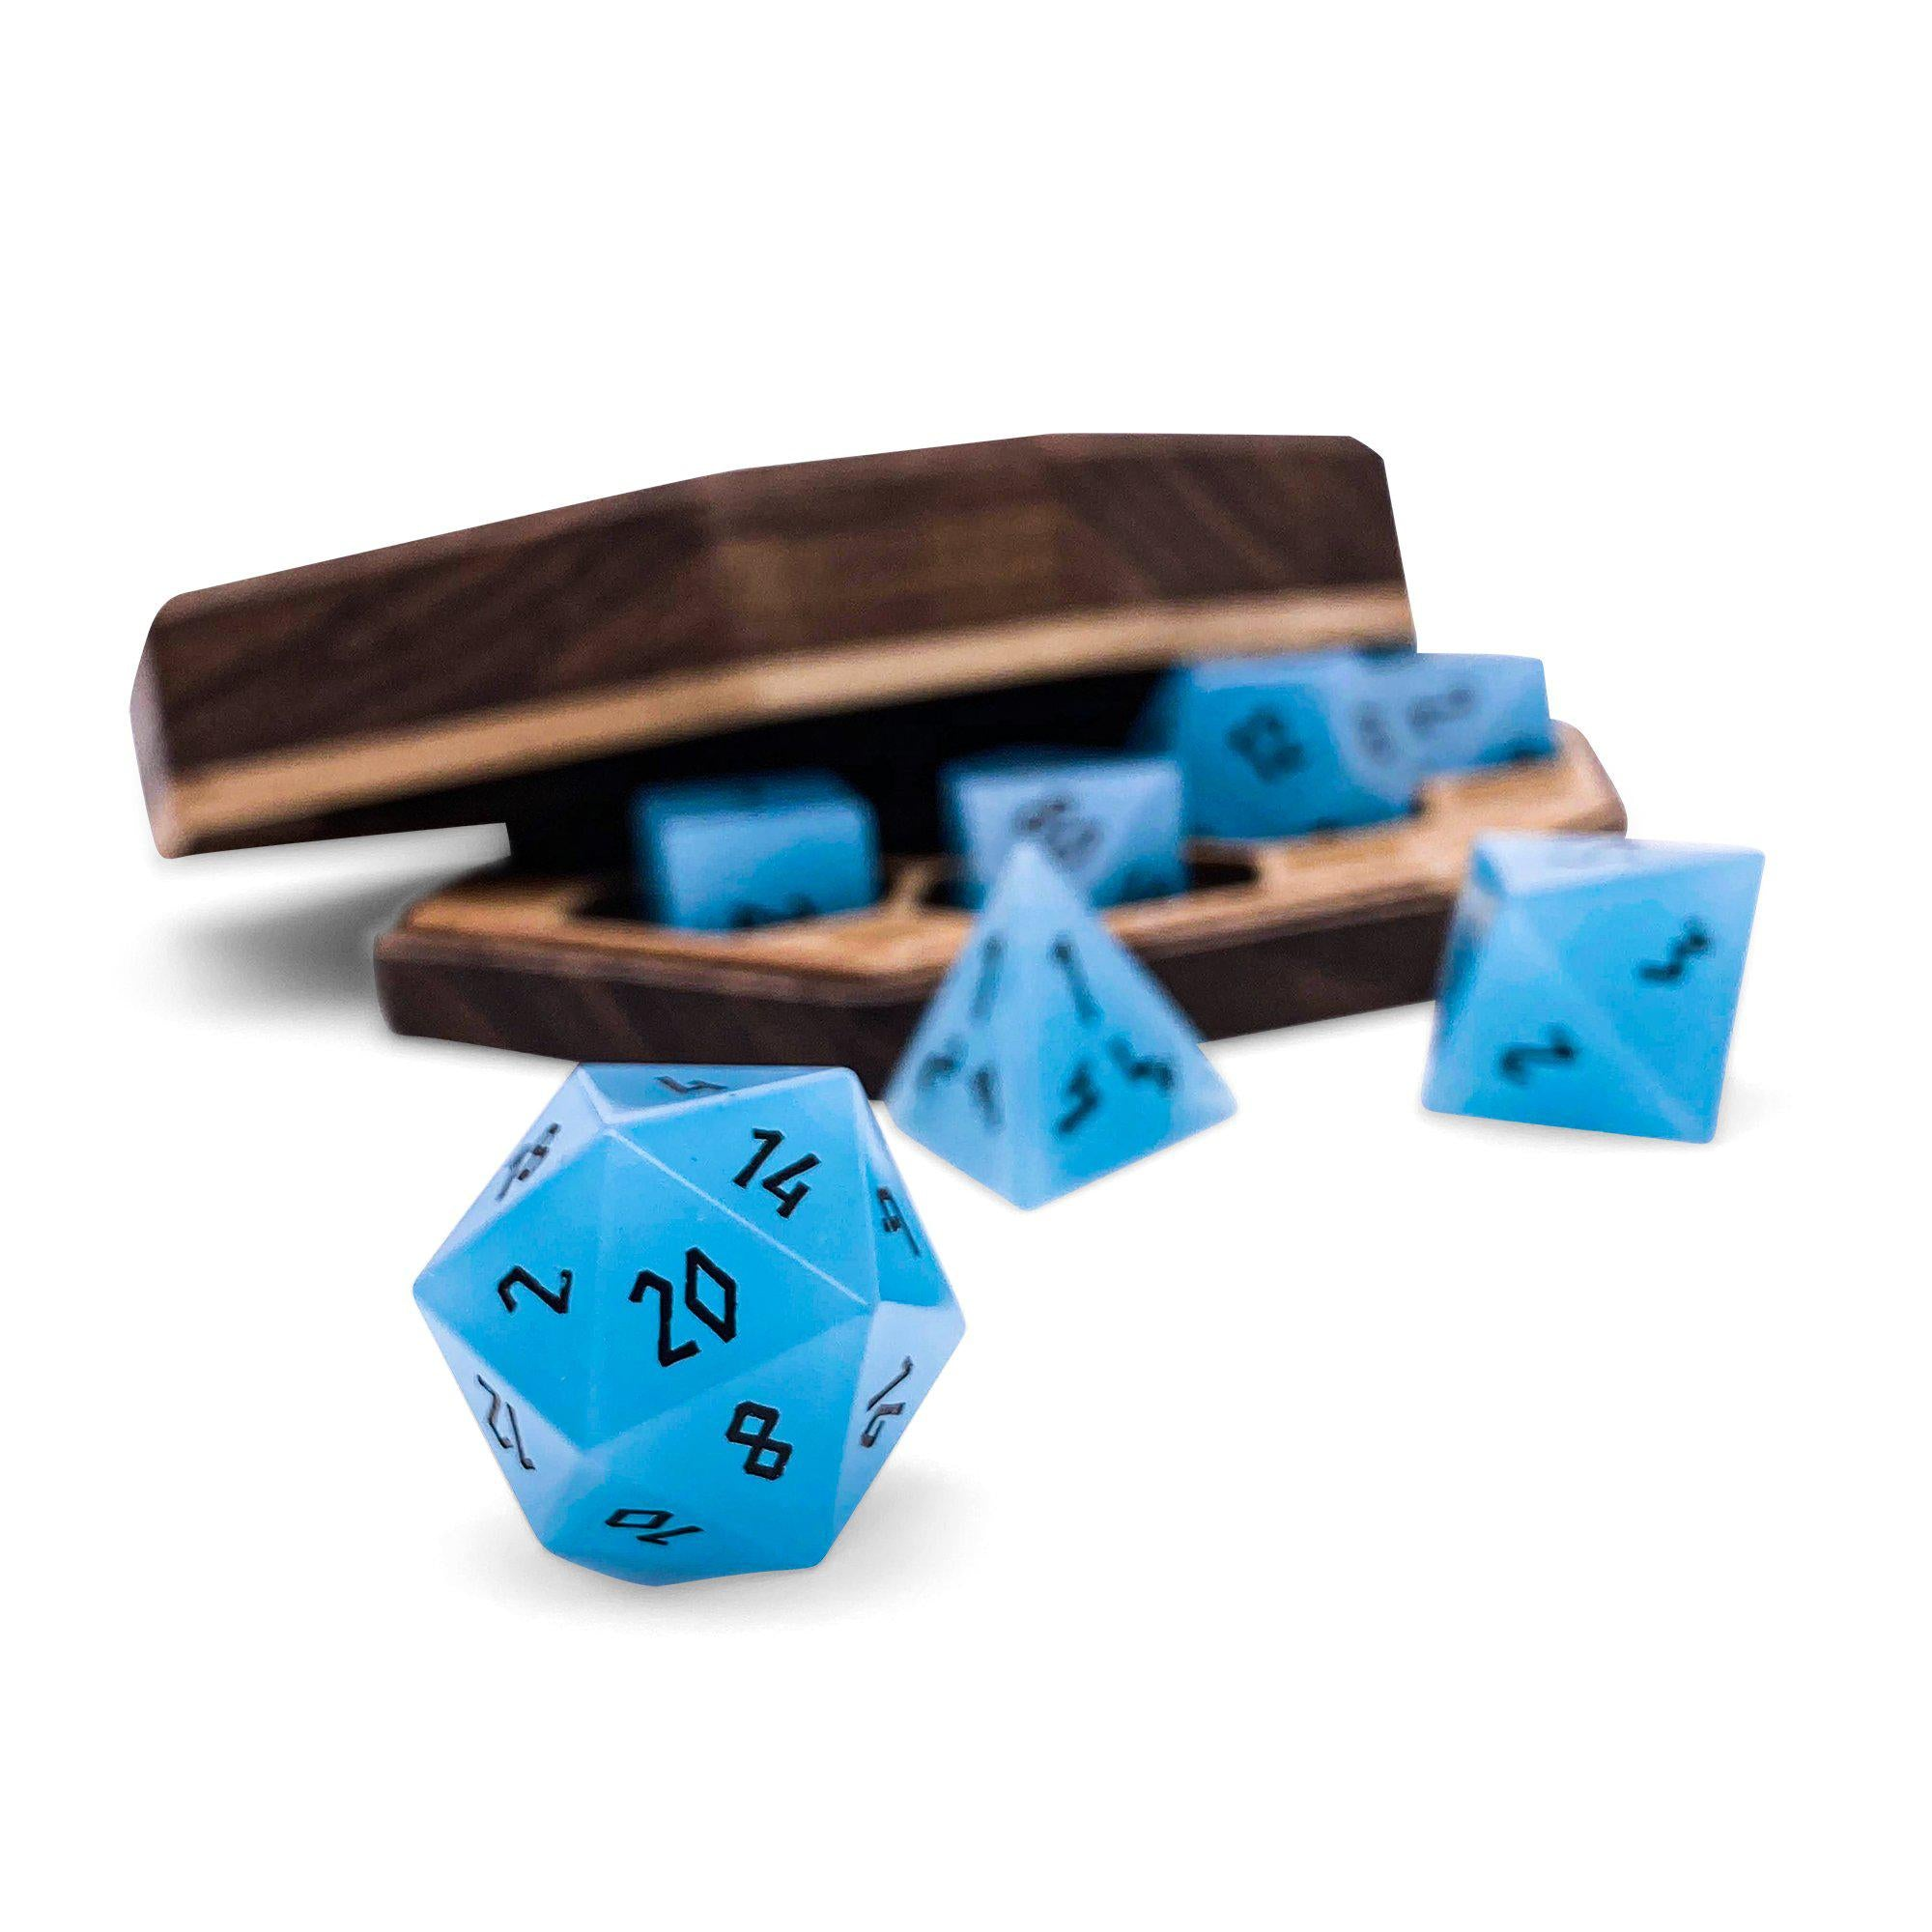 Cerulean Blue - K9 Glass - 7 Piece Glass Dice Set